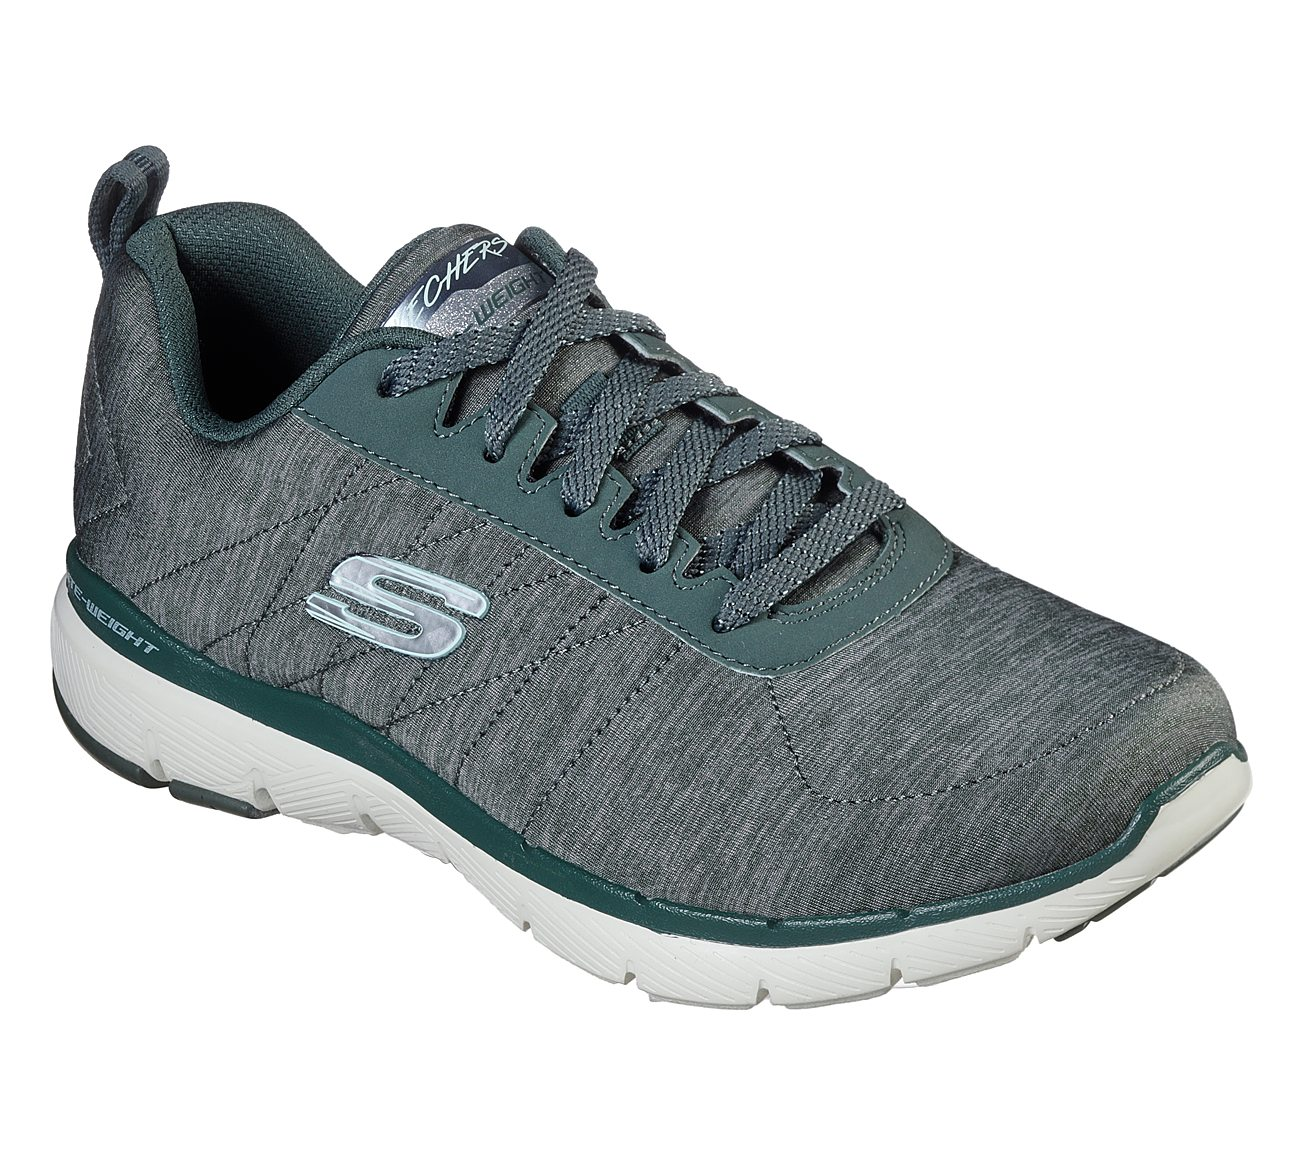 467af3f1895 Buy SKECHERS Flex Appeal 3.0 - Insiders Flex Appeal Shoes only £63.00